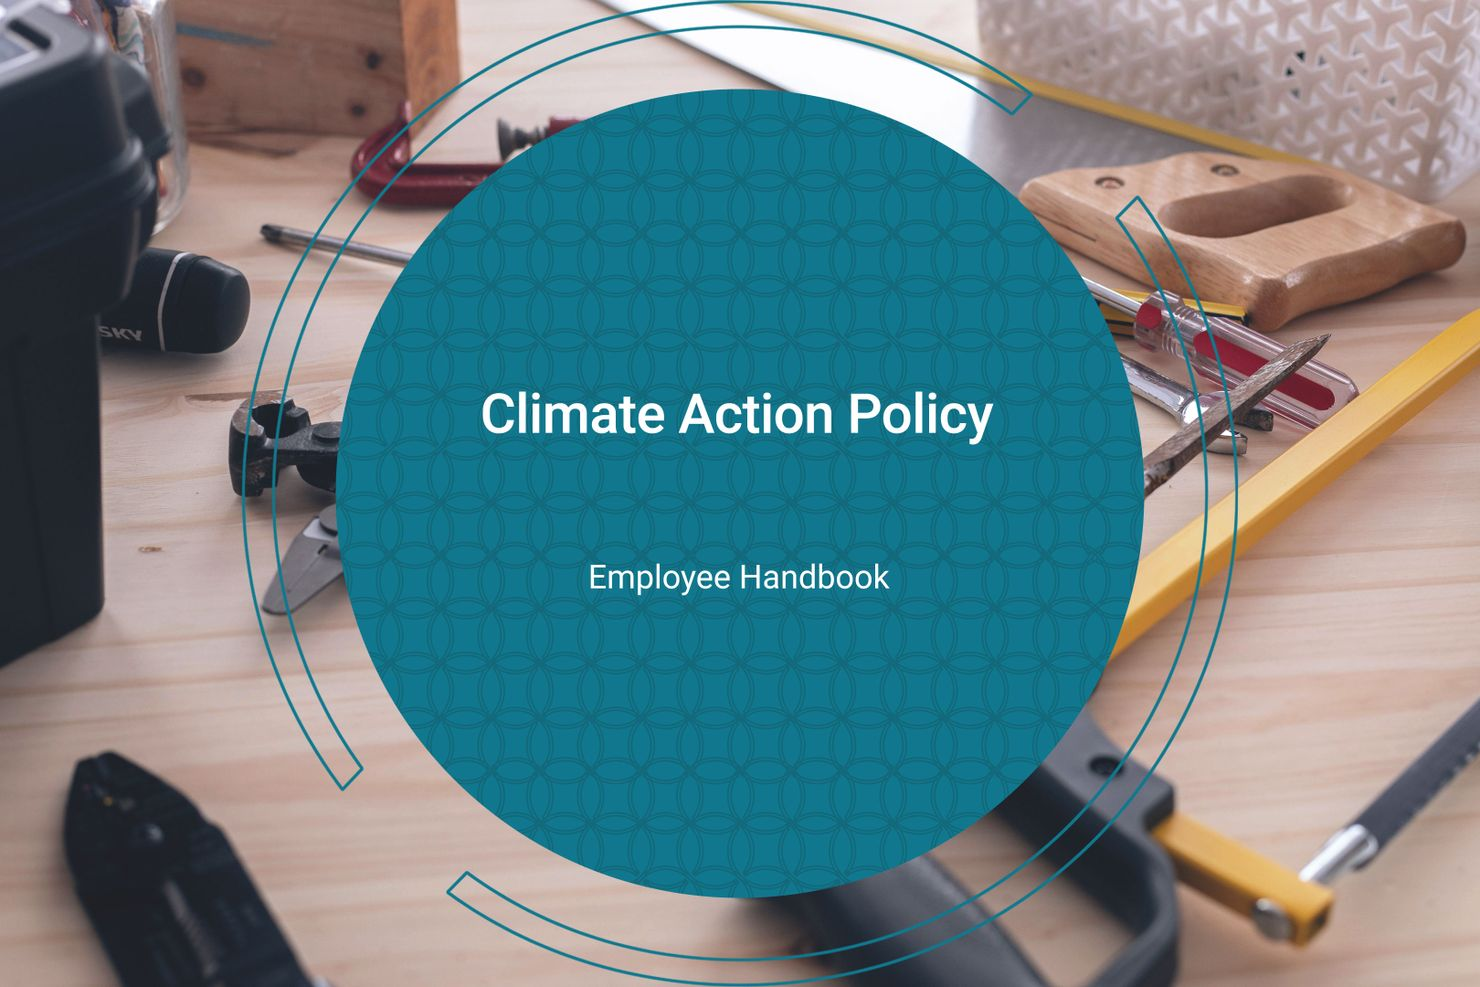 """a teal circle containing the text """"climate action policy"""" overlays a photo of a wooden workbench covered in tools"""